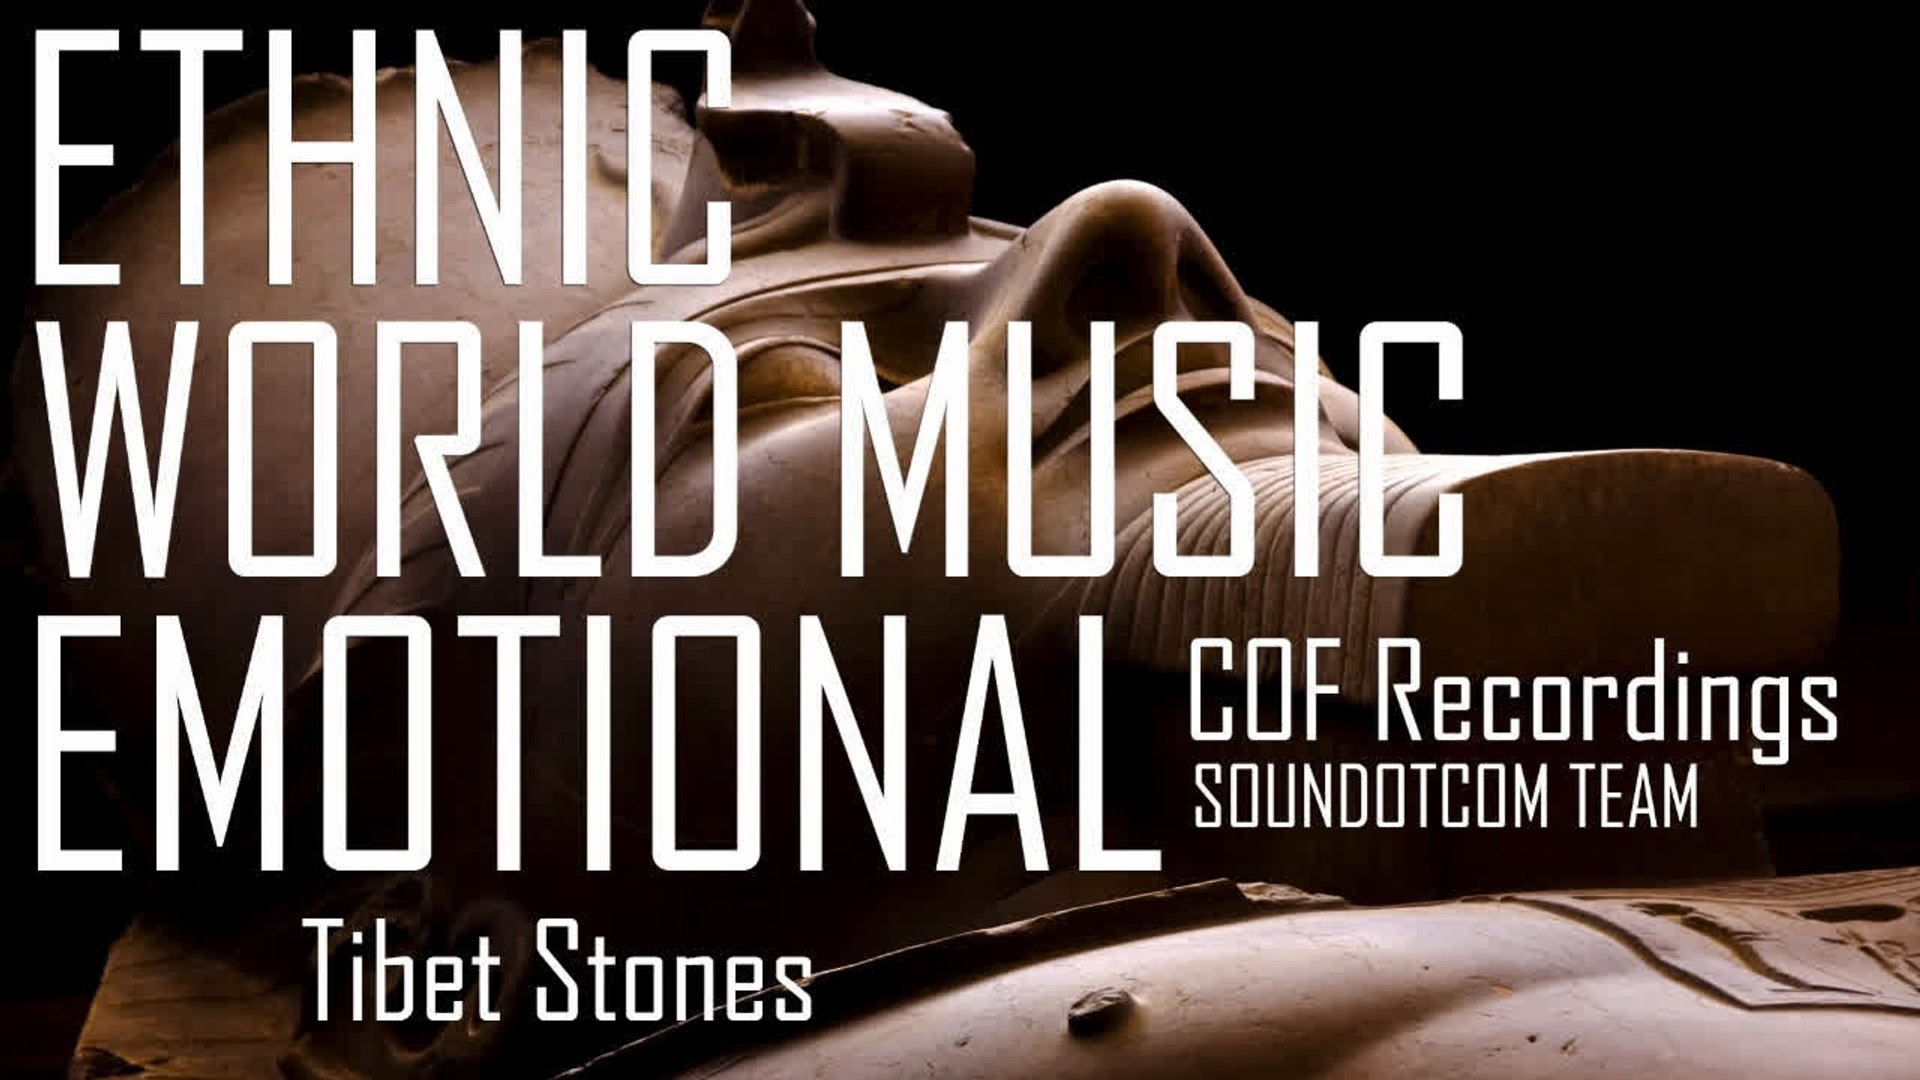 Royalty Free Music DOWNLOAD - World Music Ethnic Documentary | Tibet Stones